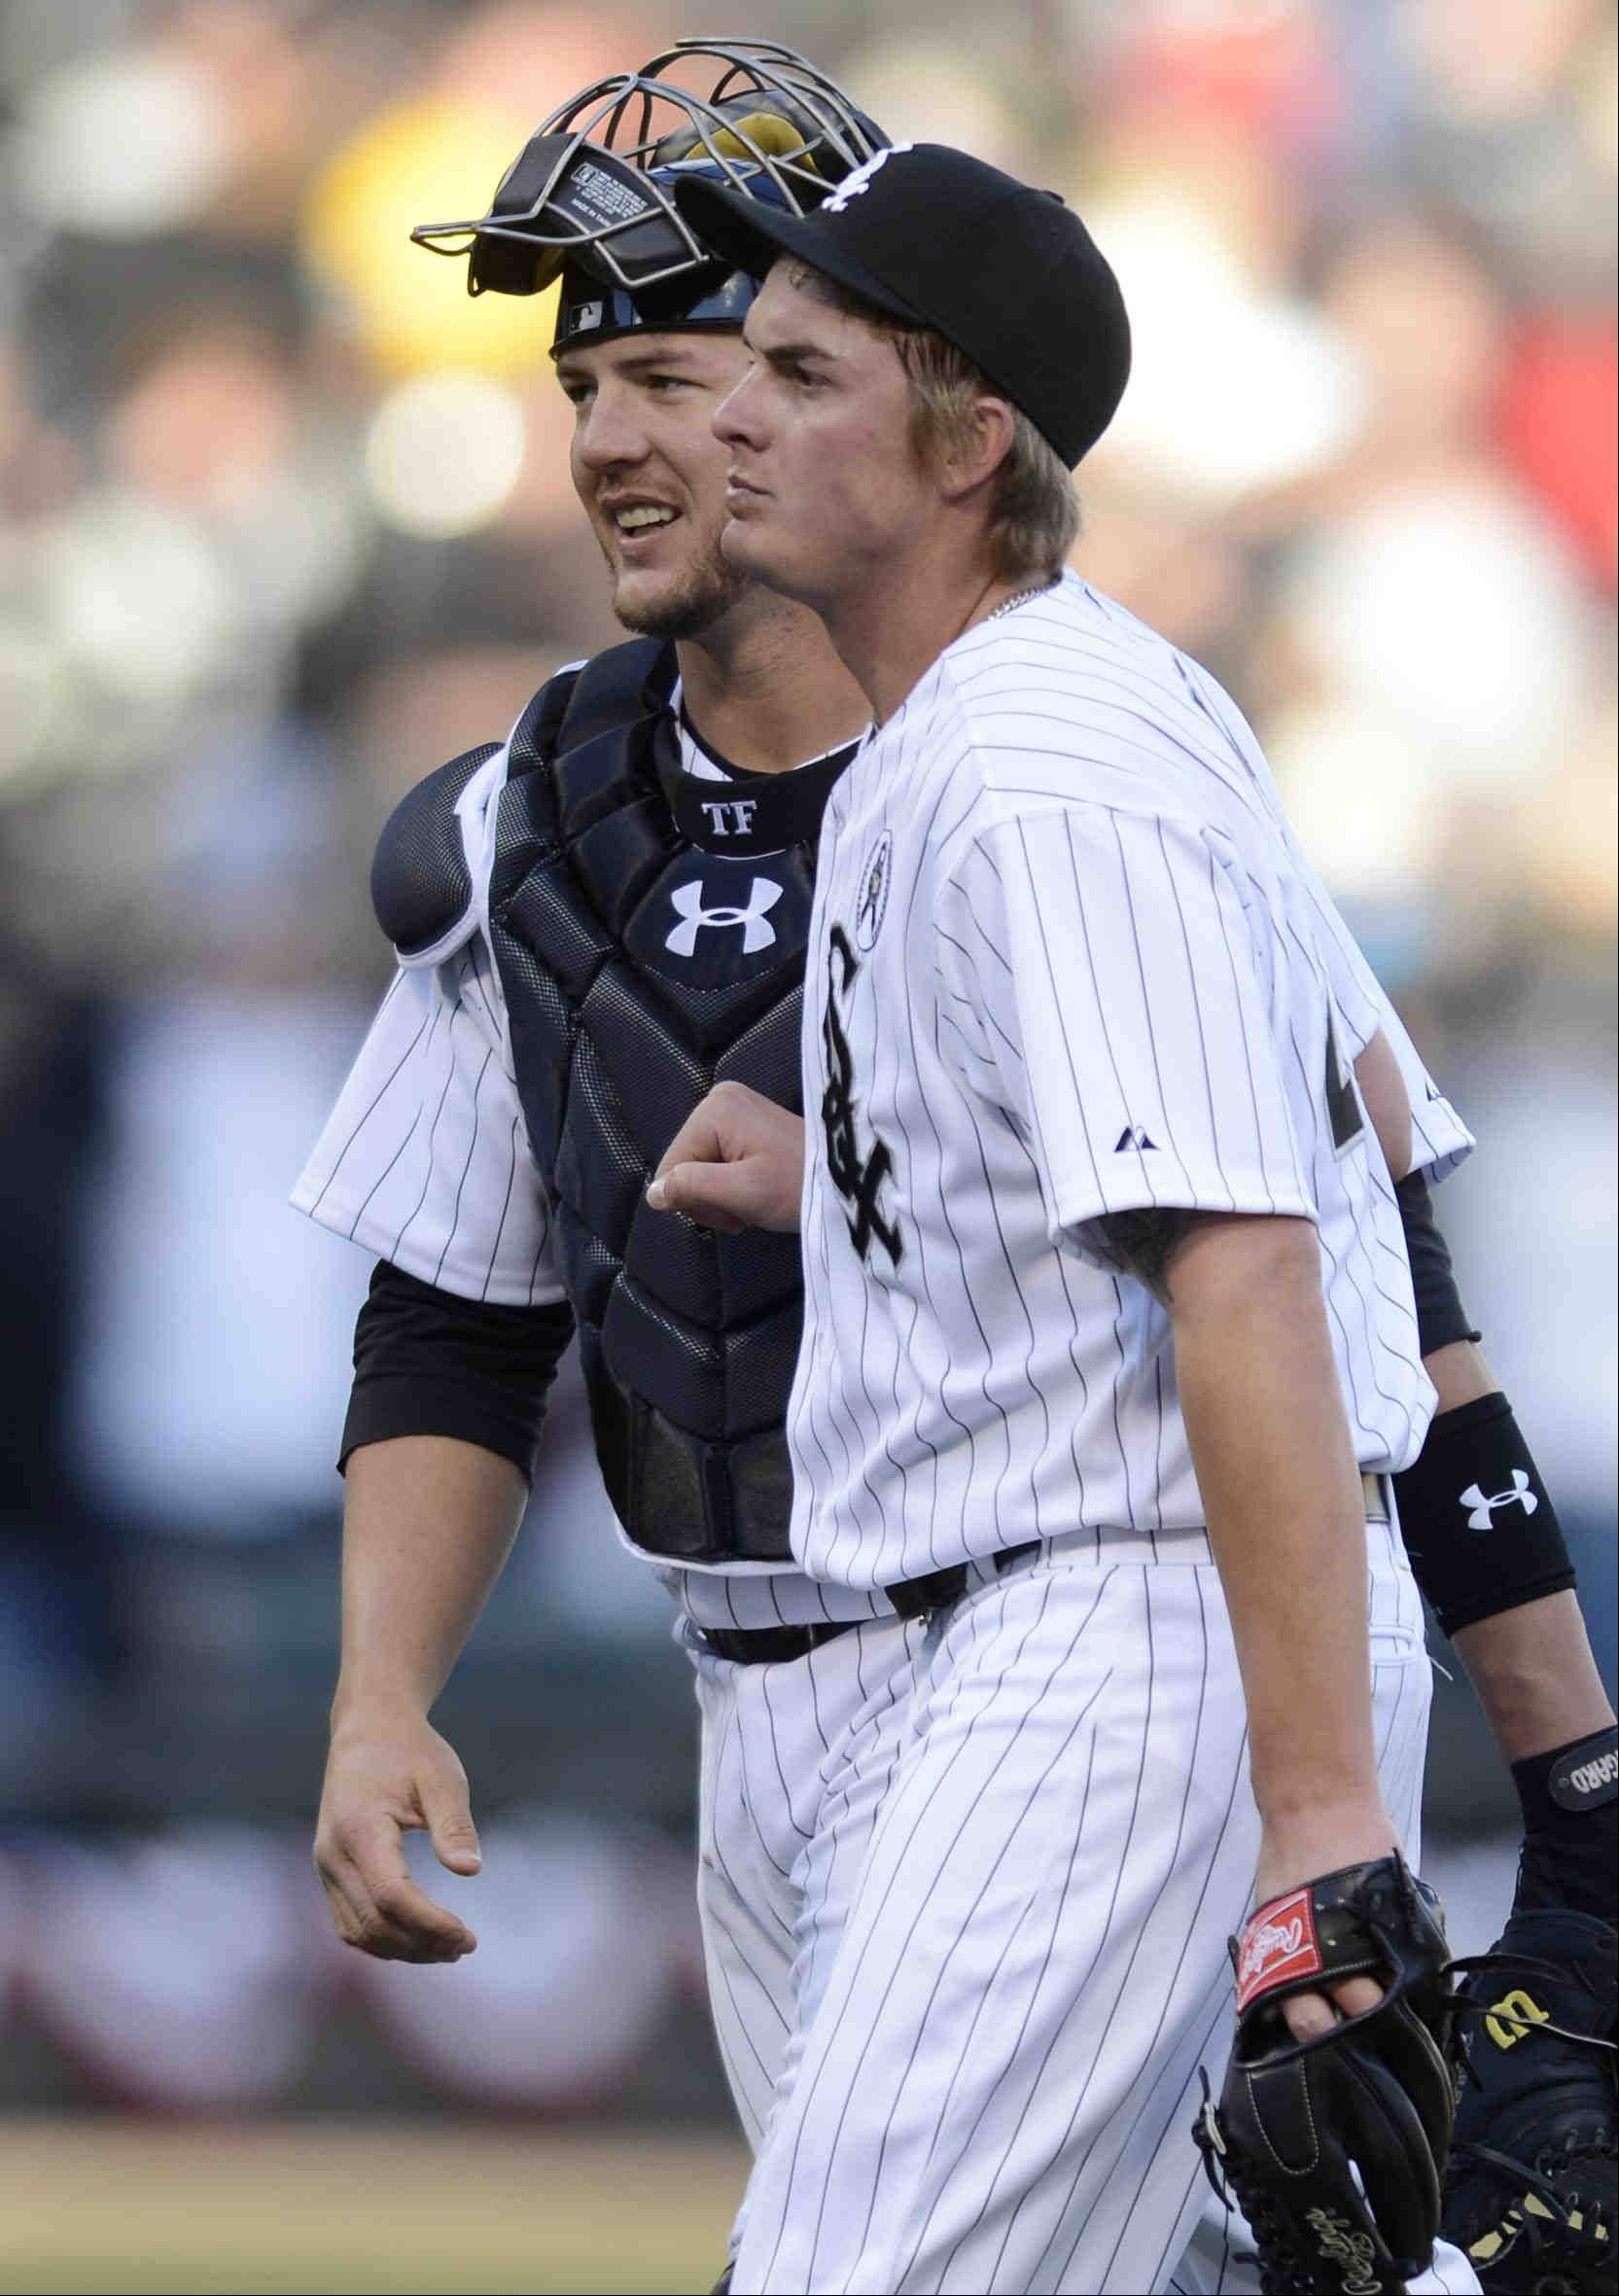 Catcher Tyler Flowers and closer Addison Reed walk off the field after the Chicago White Sox defeated the Kansas City Royals in the 2013 season opener at U.S. Cellular Field in Chicago.